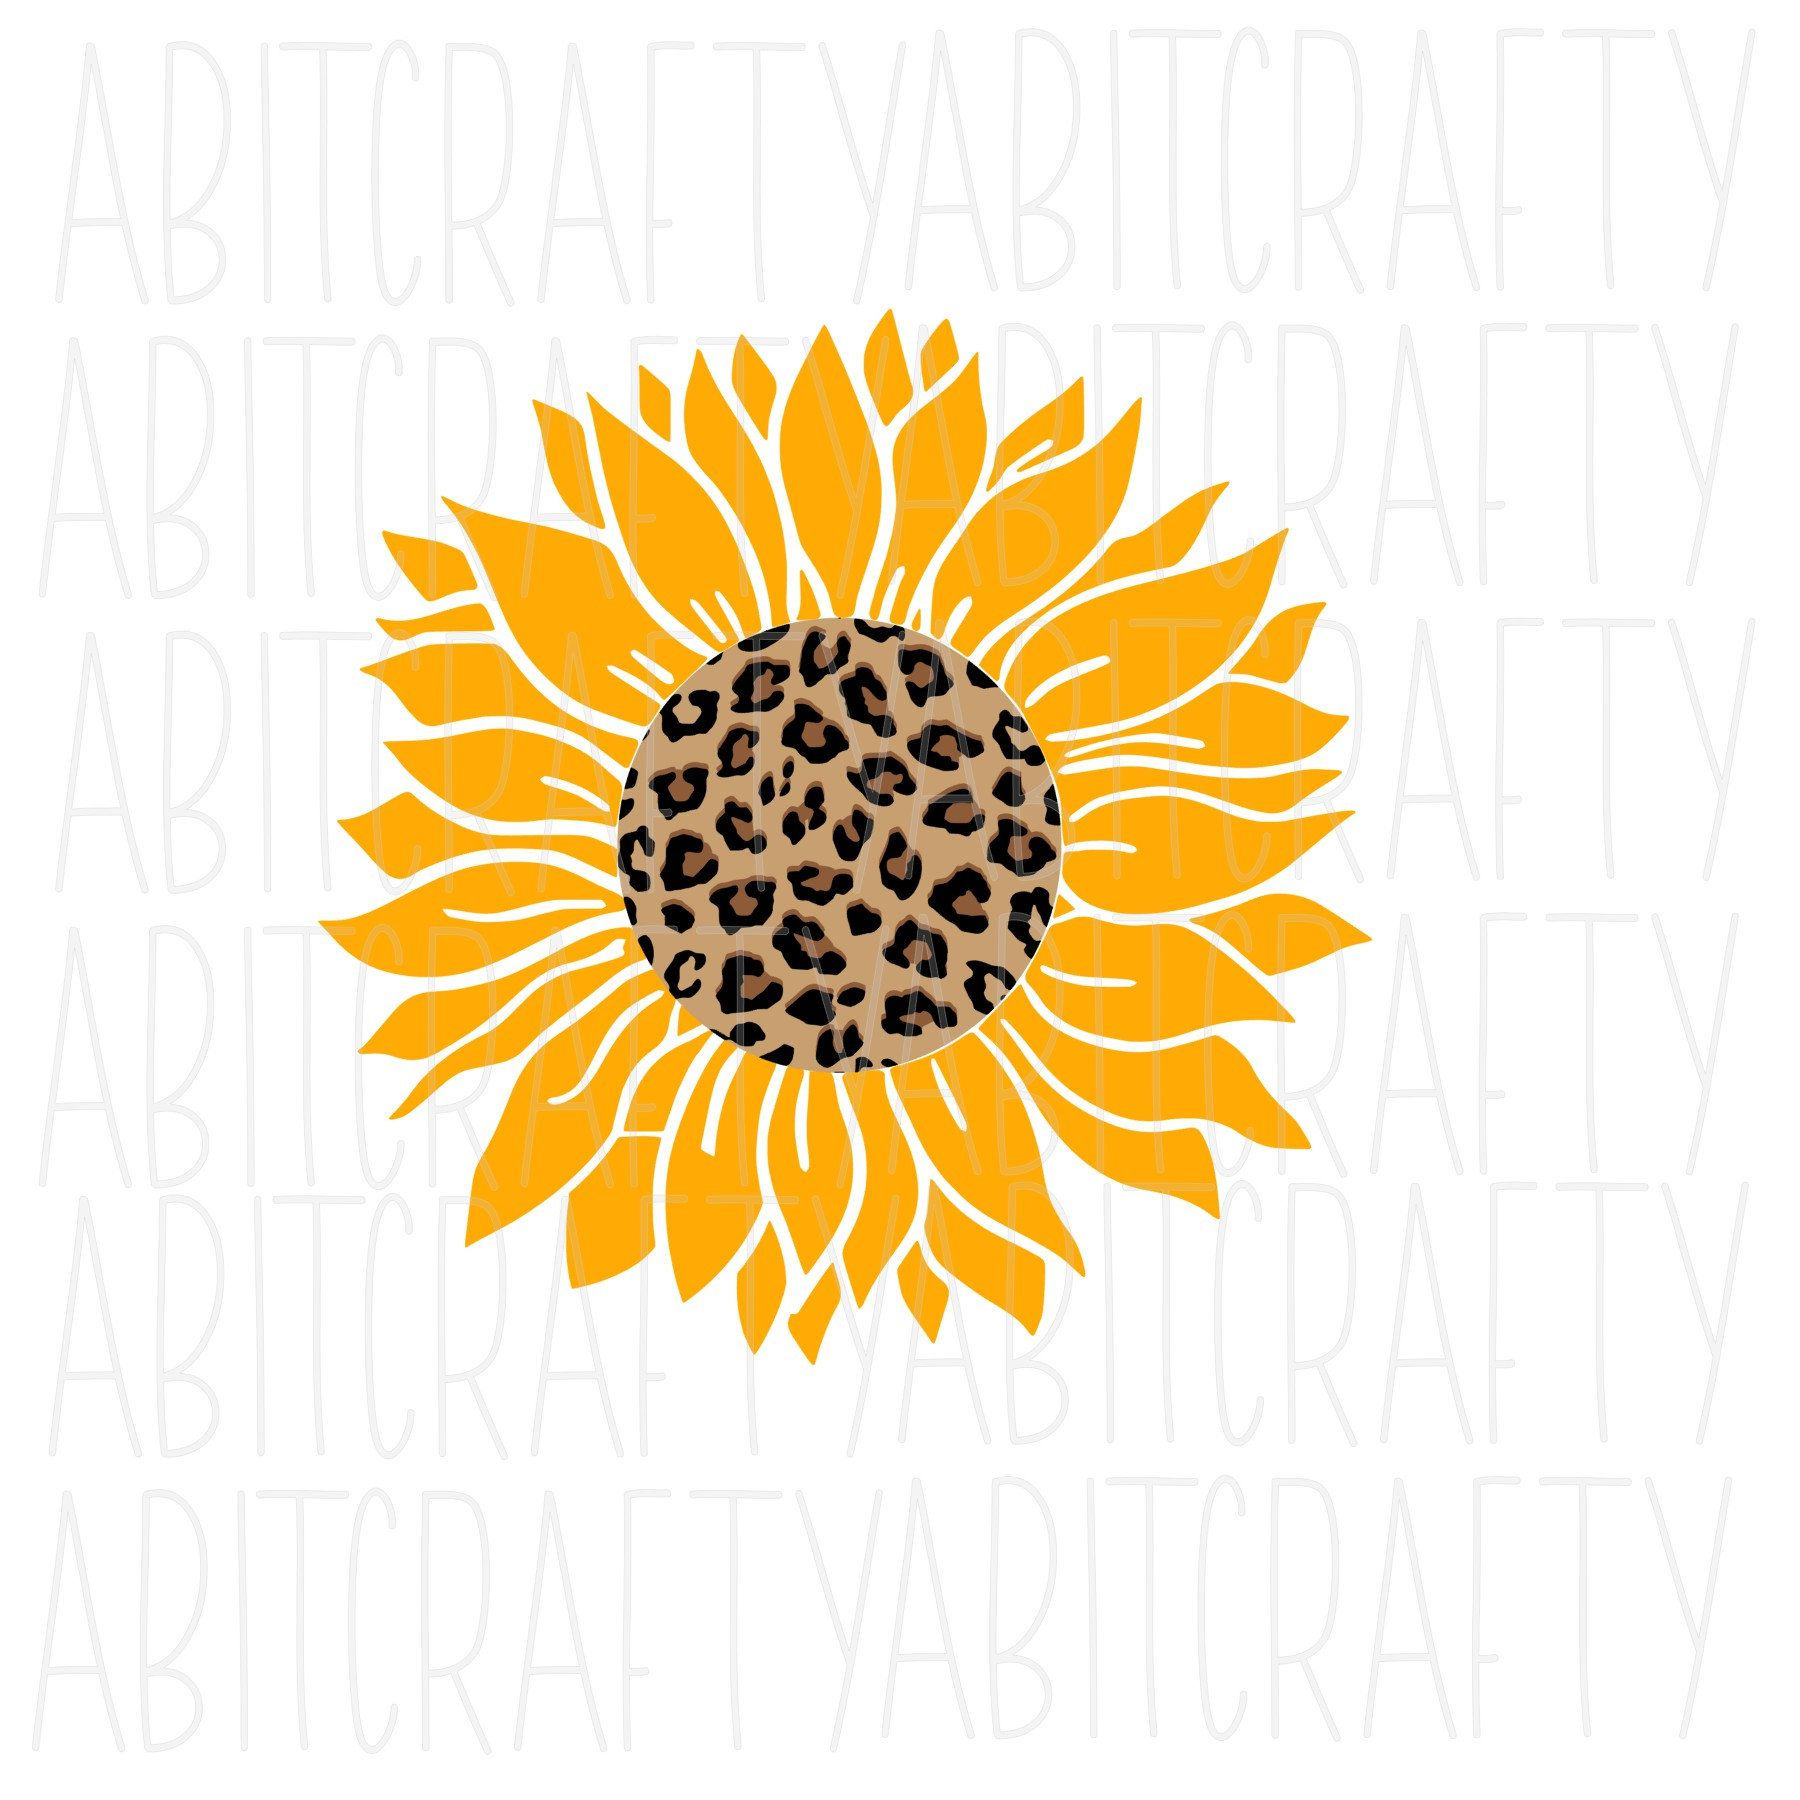 Leopard Sunflower Svg Png Sublimation Digital Download Vector Art Cricut Silhouette Vector Art Stencil Patterns Templates Sunflower Drawing